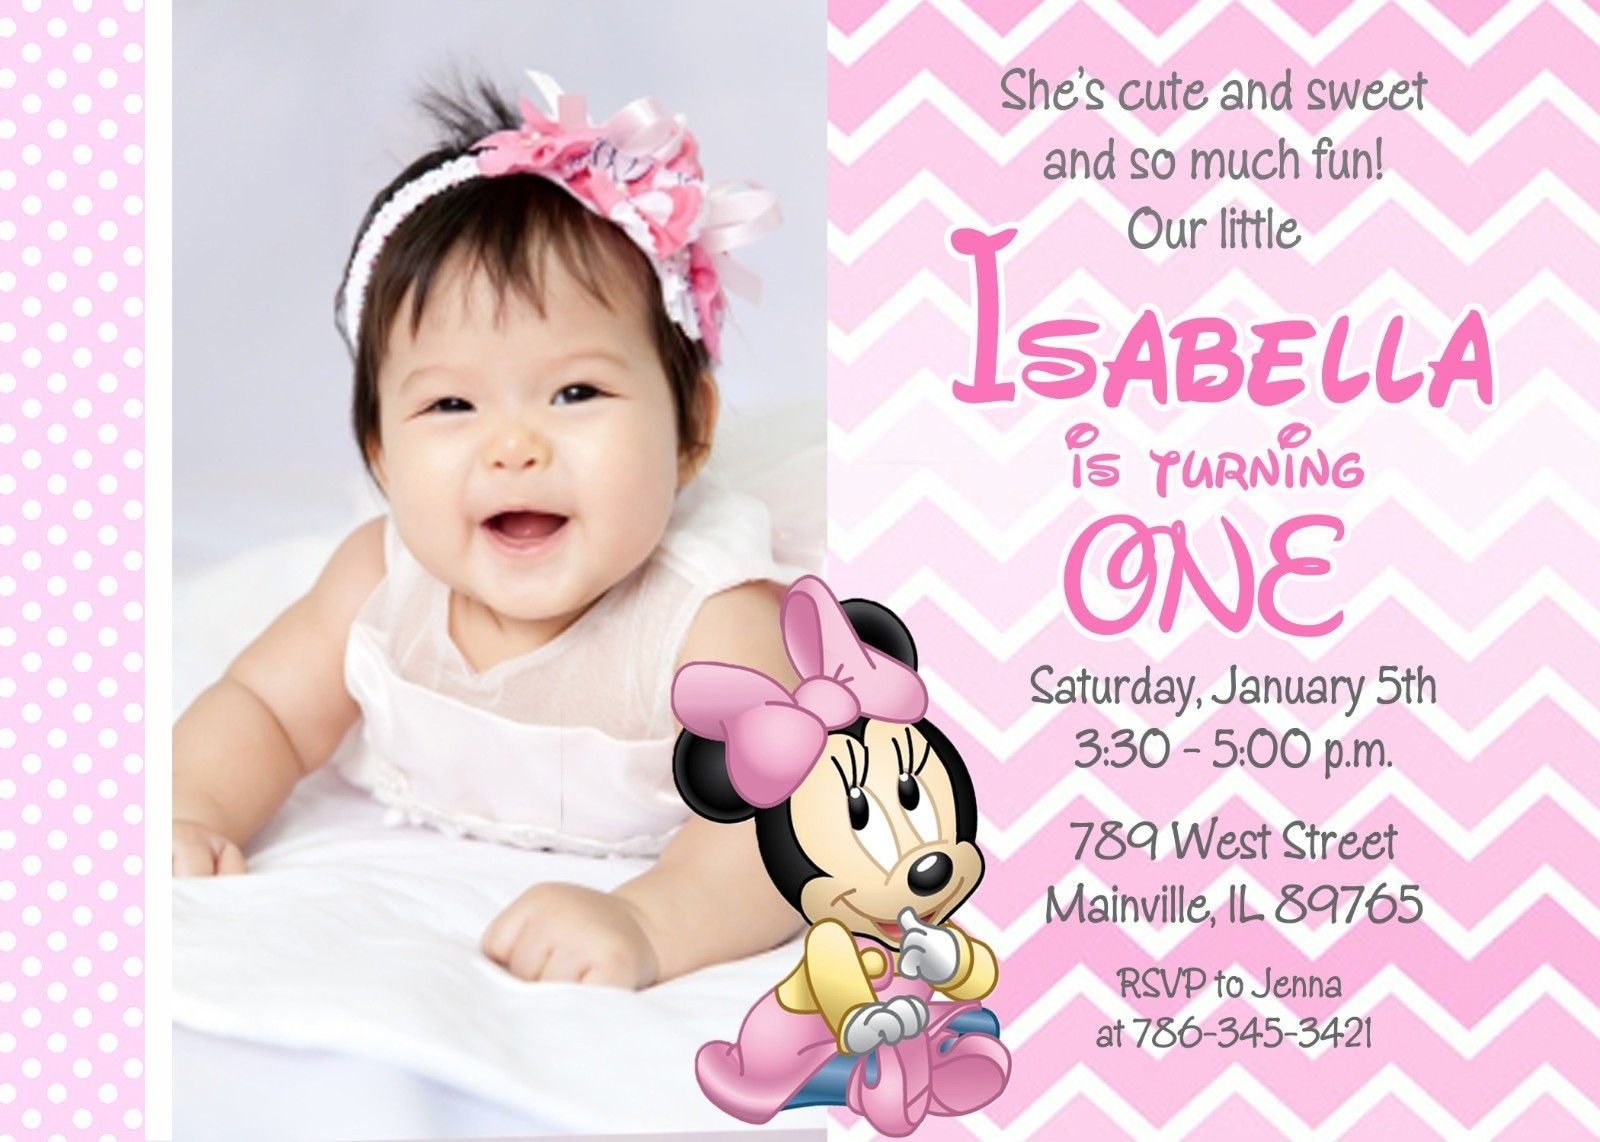 Greeting Cards And Invitations Minnie Mouse First Birthday - 1st birthday invitation greeting card